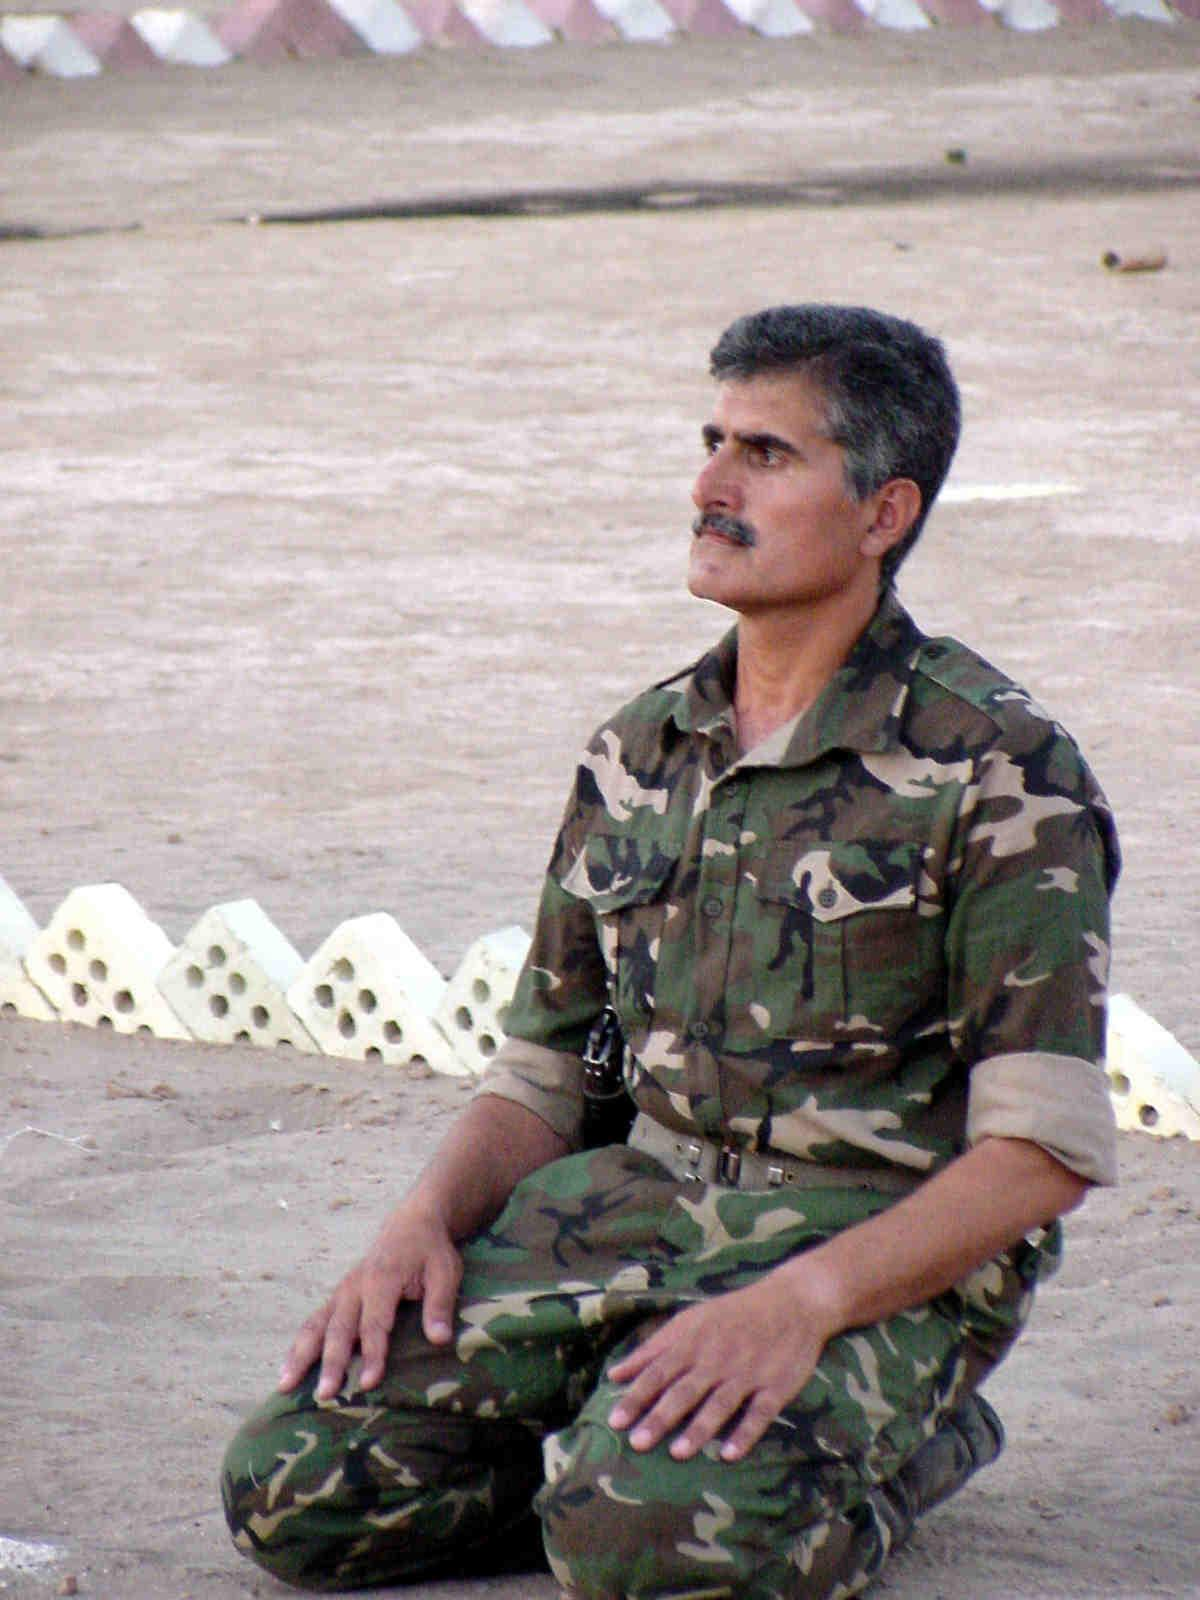 Ali Safavi as the commander of Saddam's Private Army in Camp Ashraf Iraq